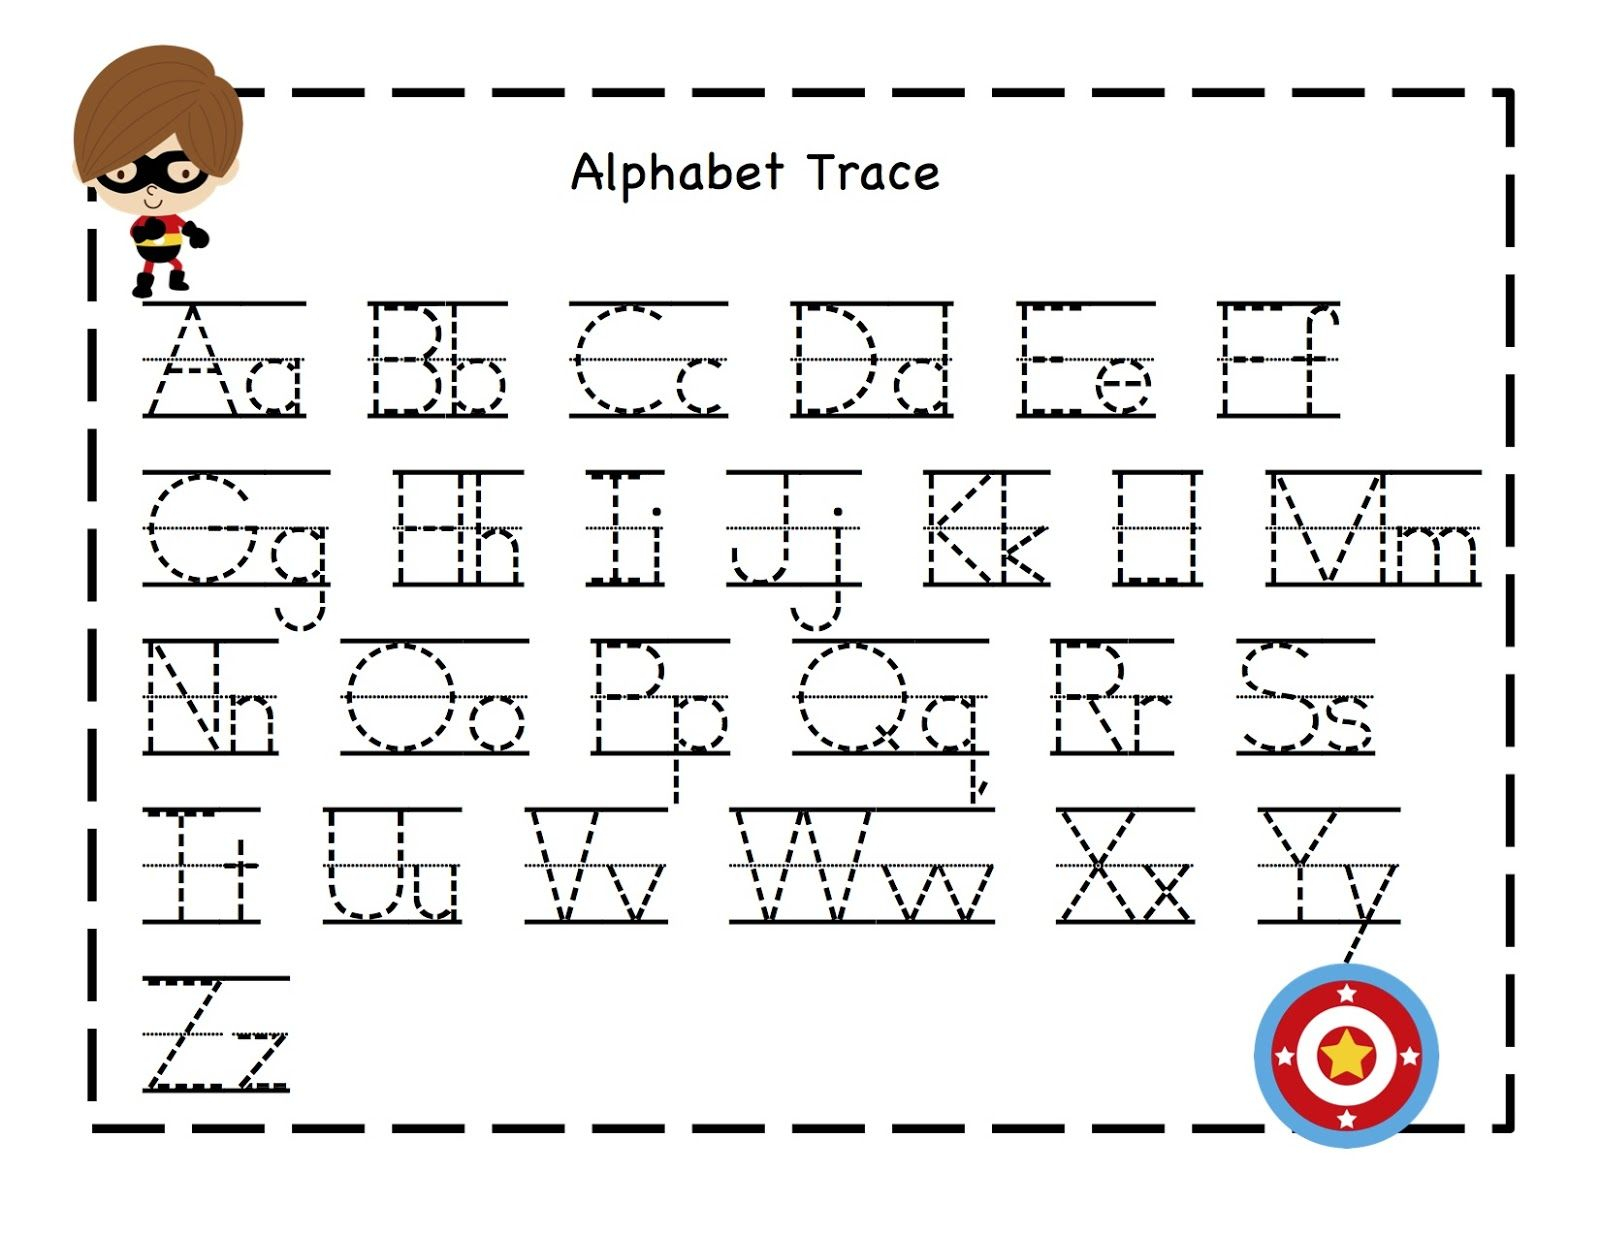 Abc Tracing Sheets For Preschool Kids | Alphabet Tracing